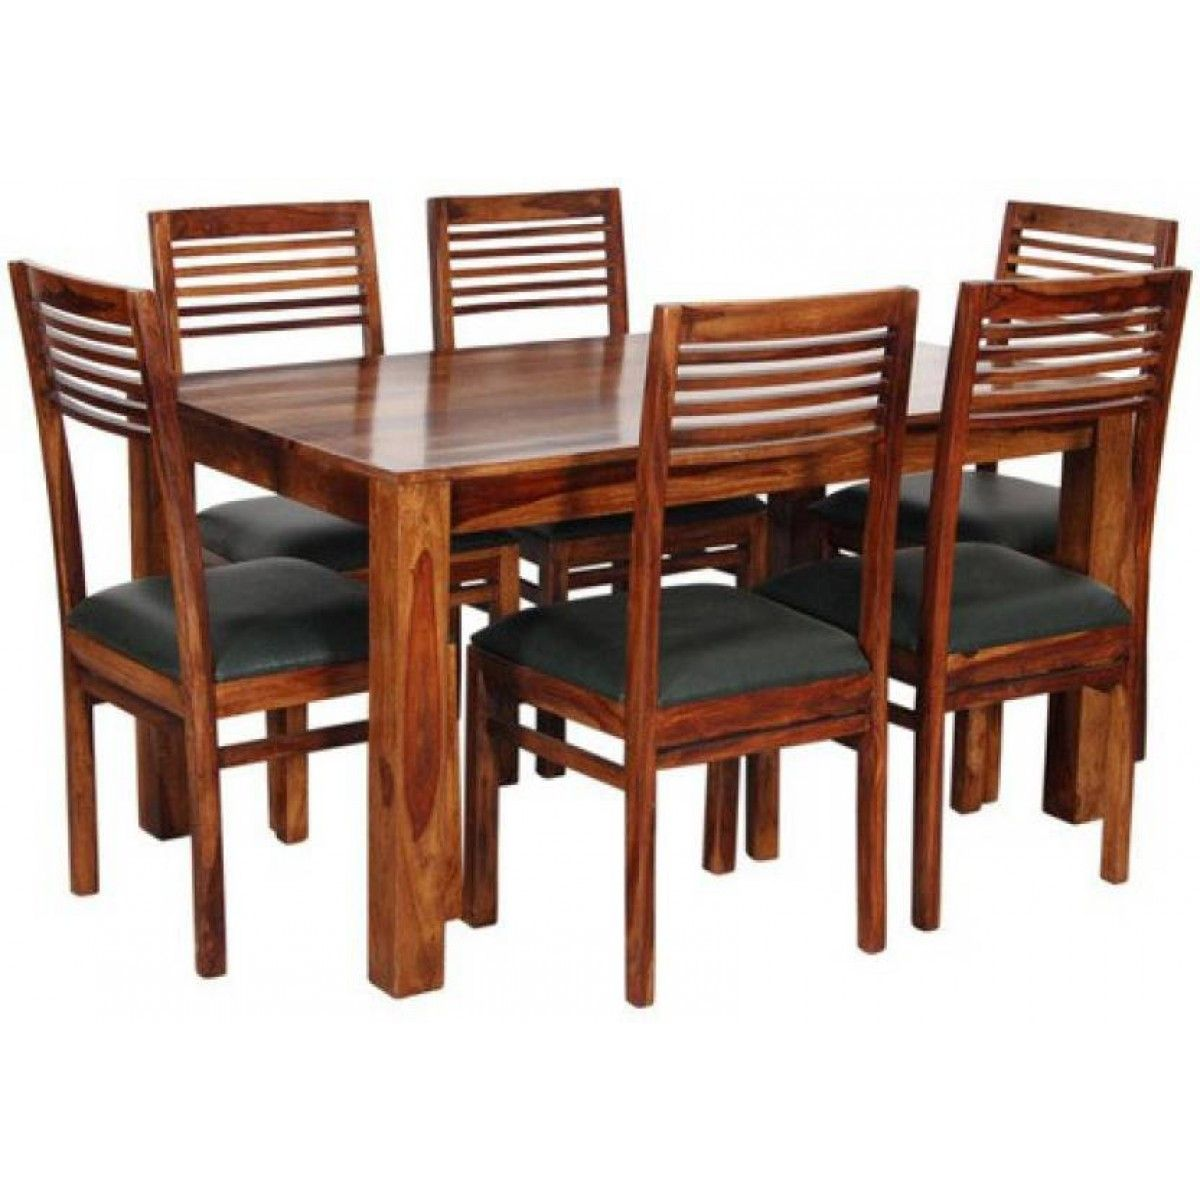 32+ Folding dining table set online india Best Choice